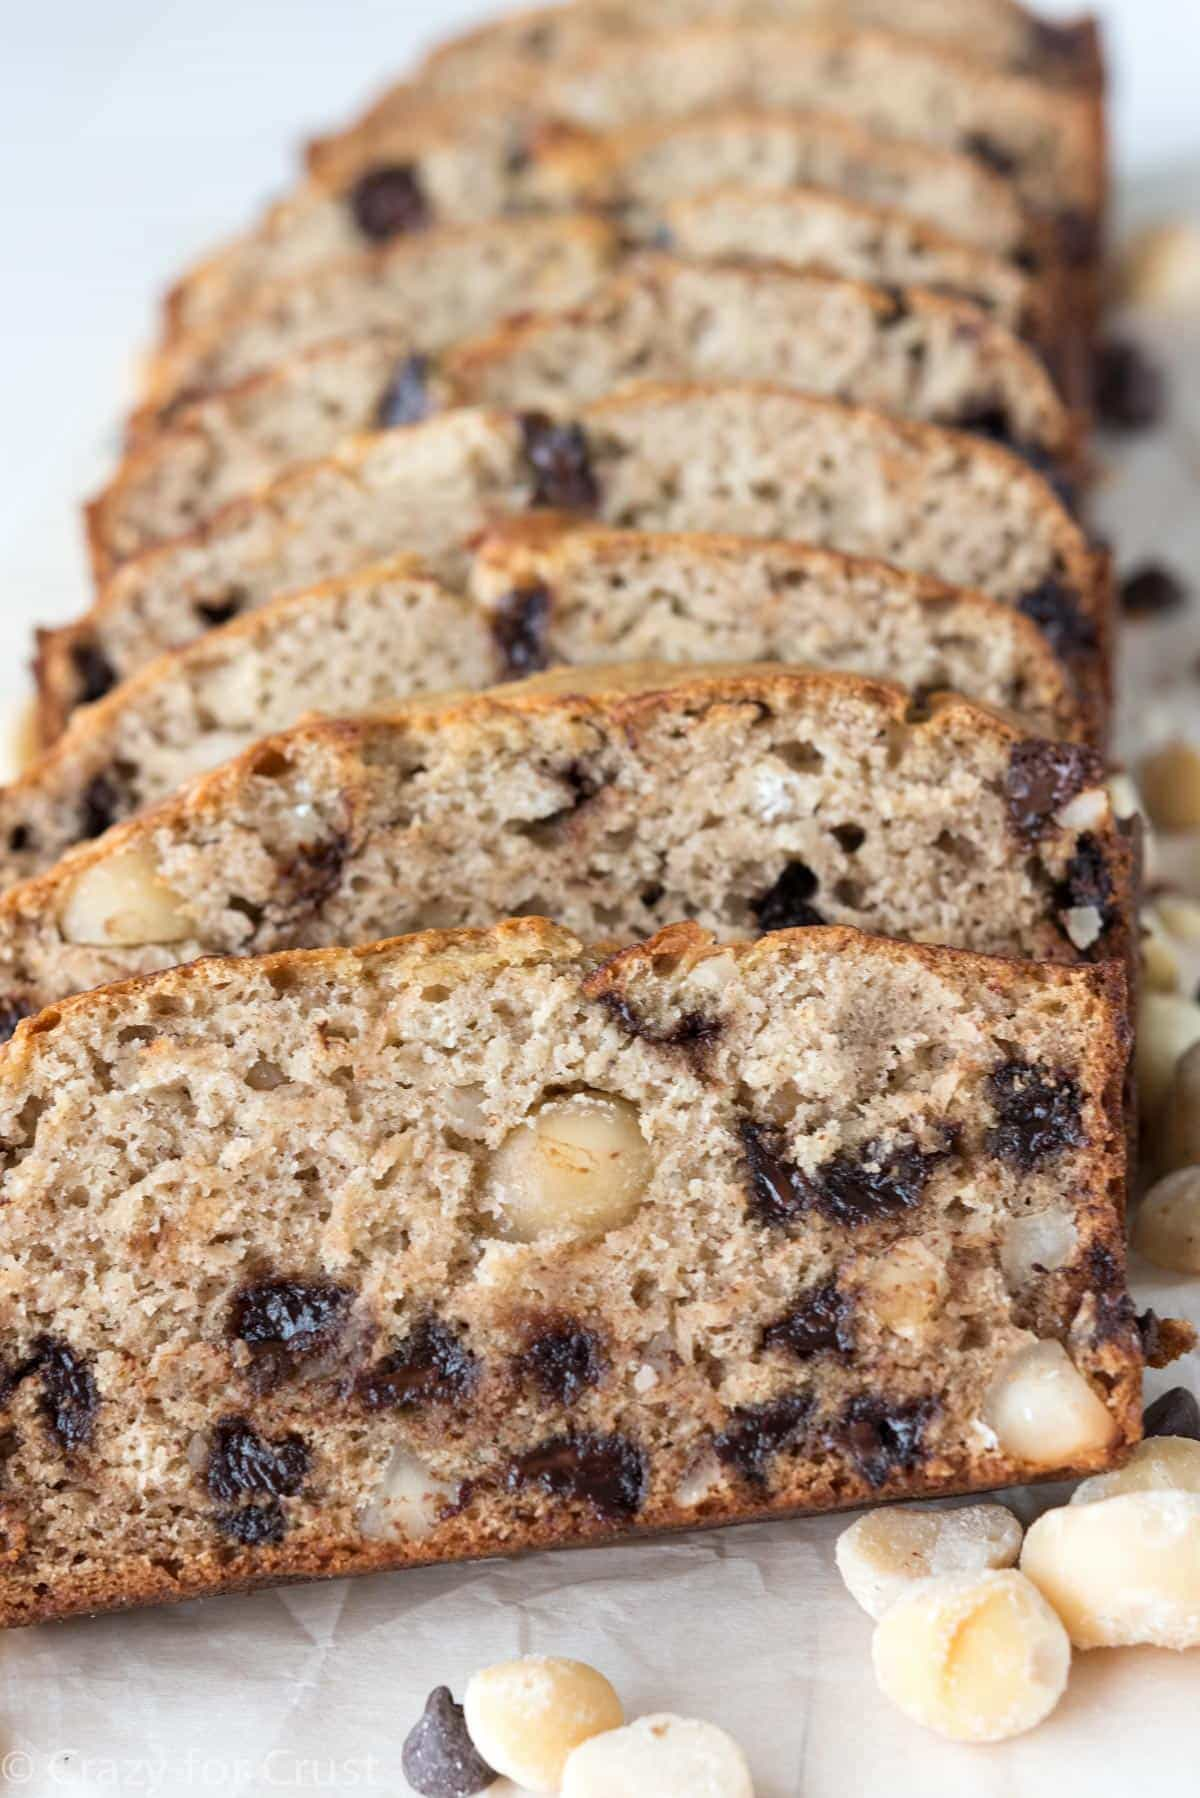 Macadamia Nut Banana Bread aka Jungle Cake! The best banana bread!!